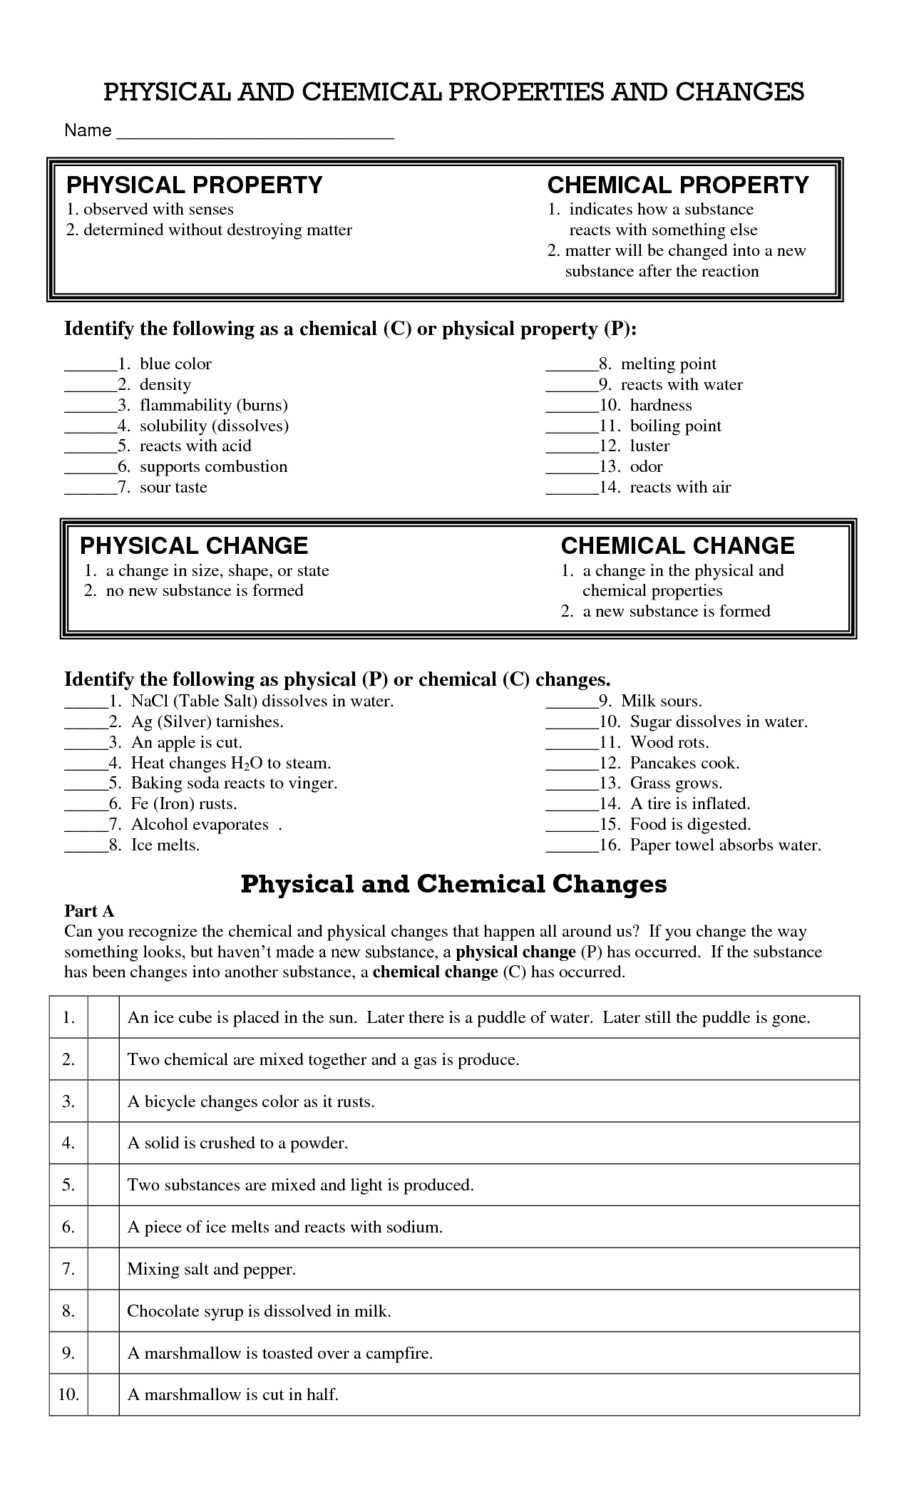 Workbooks physical science guided reading and study workbook : Proficiency Worksheet Physical And Chemical Changes Chemical And ...